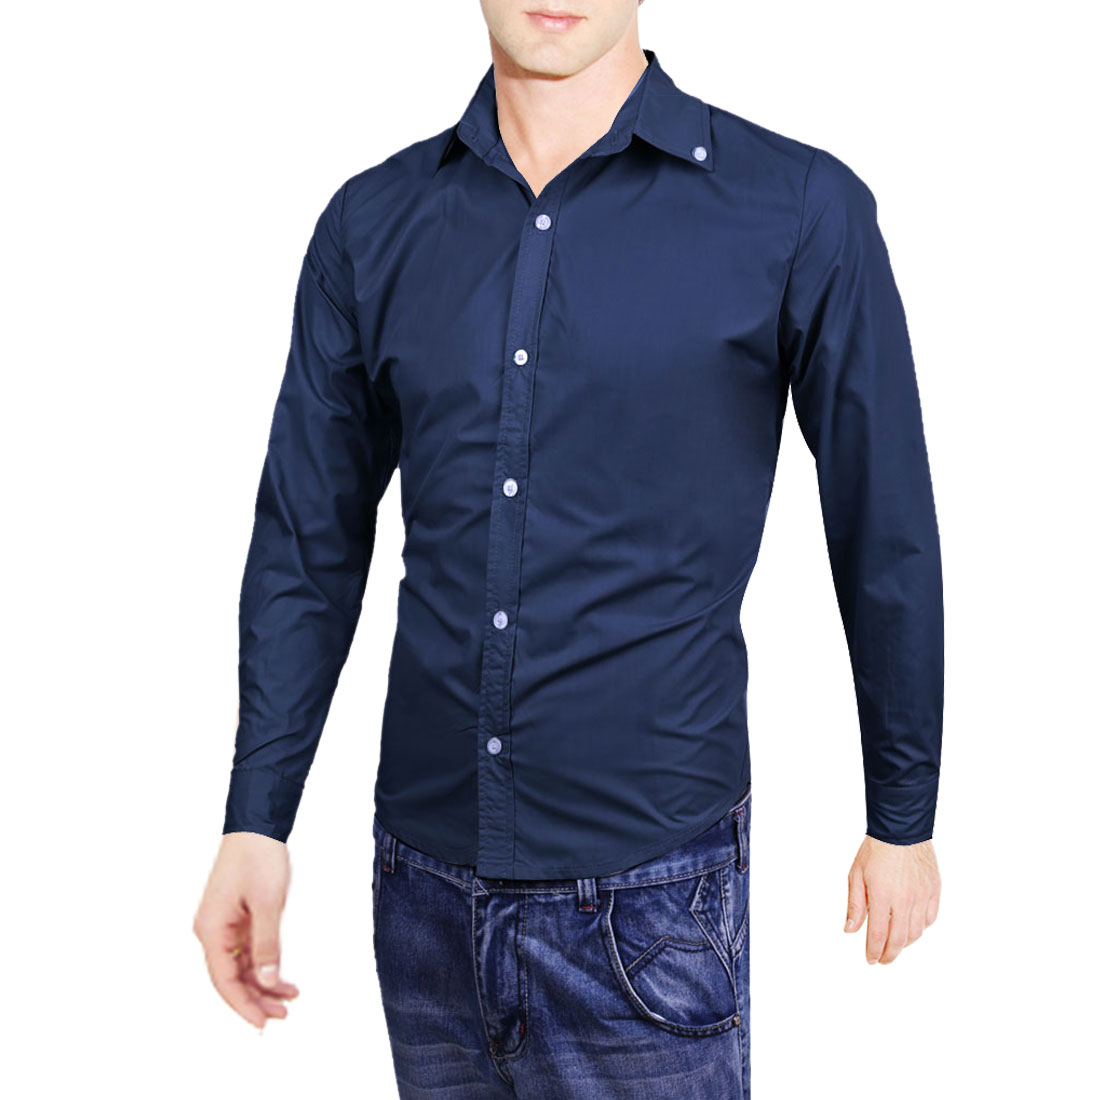 Men Point Collar Button Up Long Sleeve Solid Color Shirt Navy Blue M